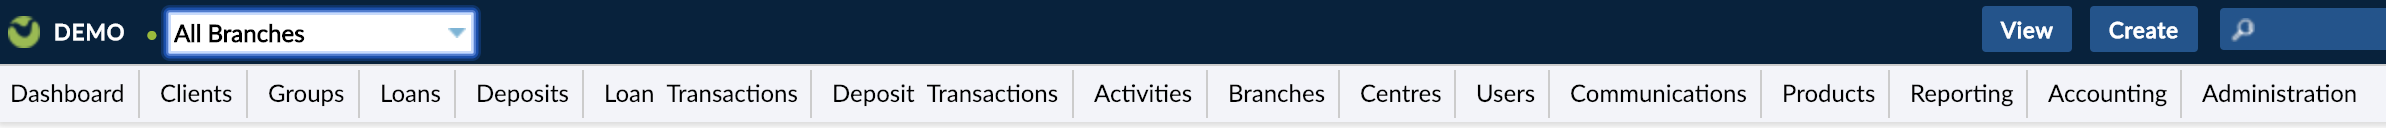 All Branches dropdown